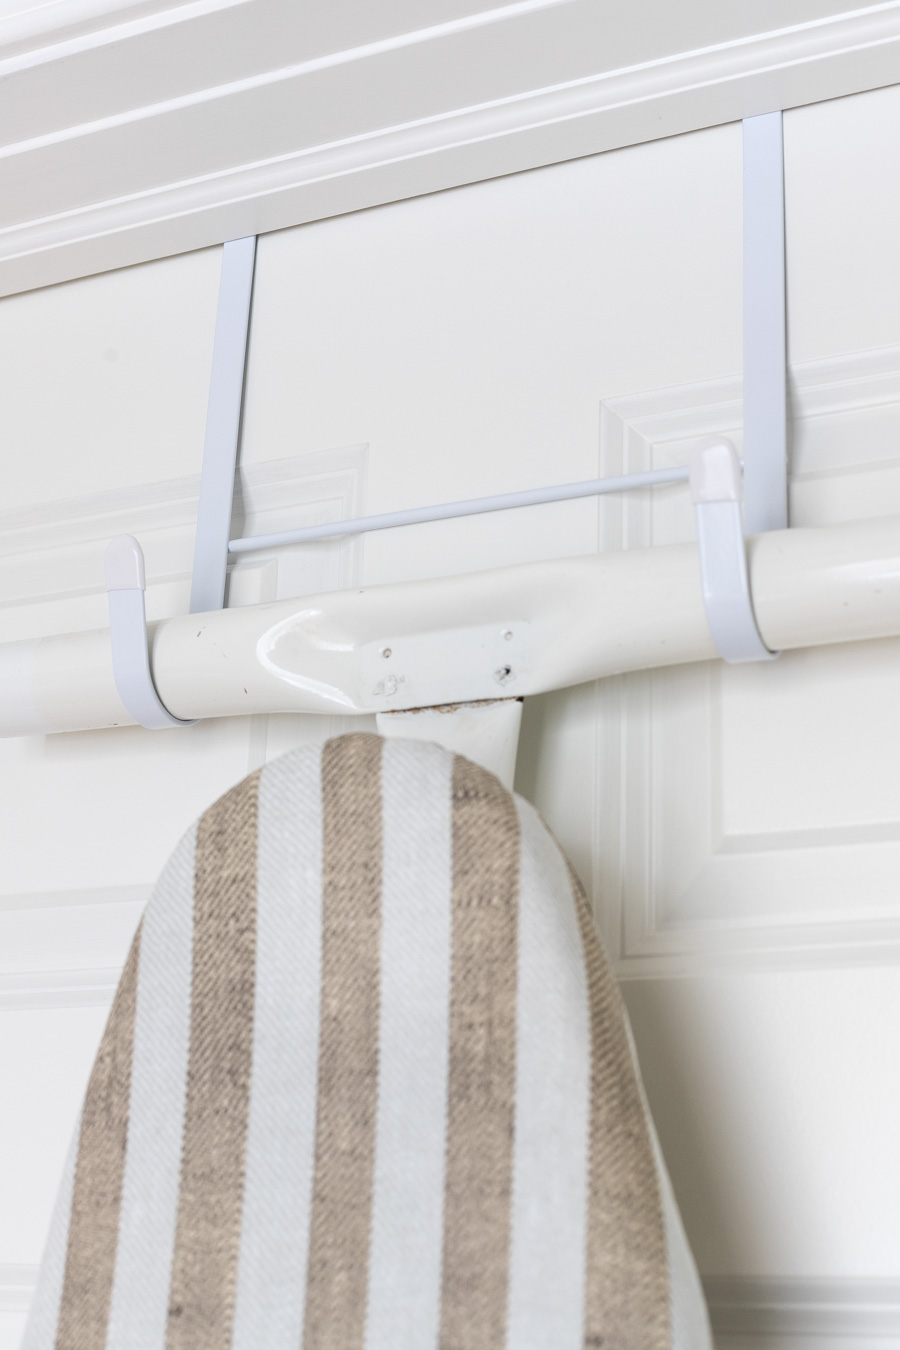 Over the door hanger for an ironing board - such a great space saver!